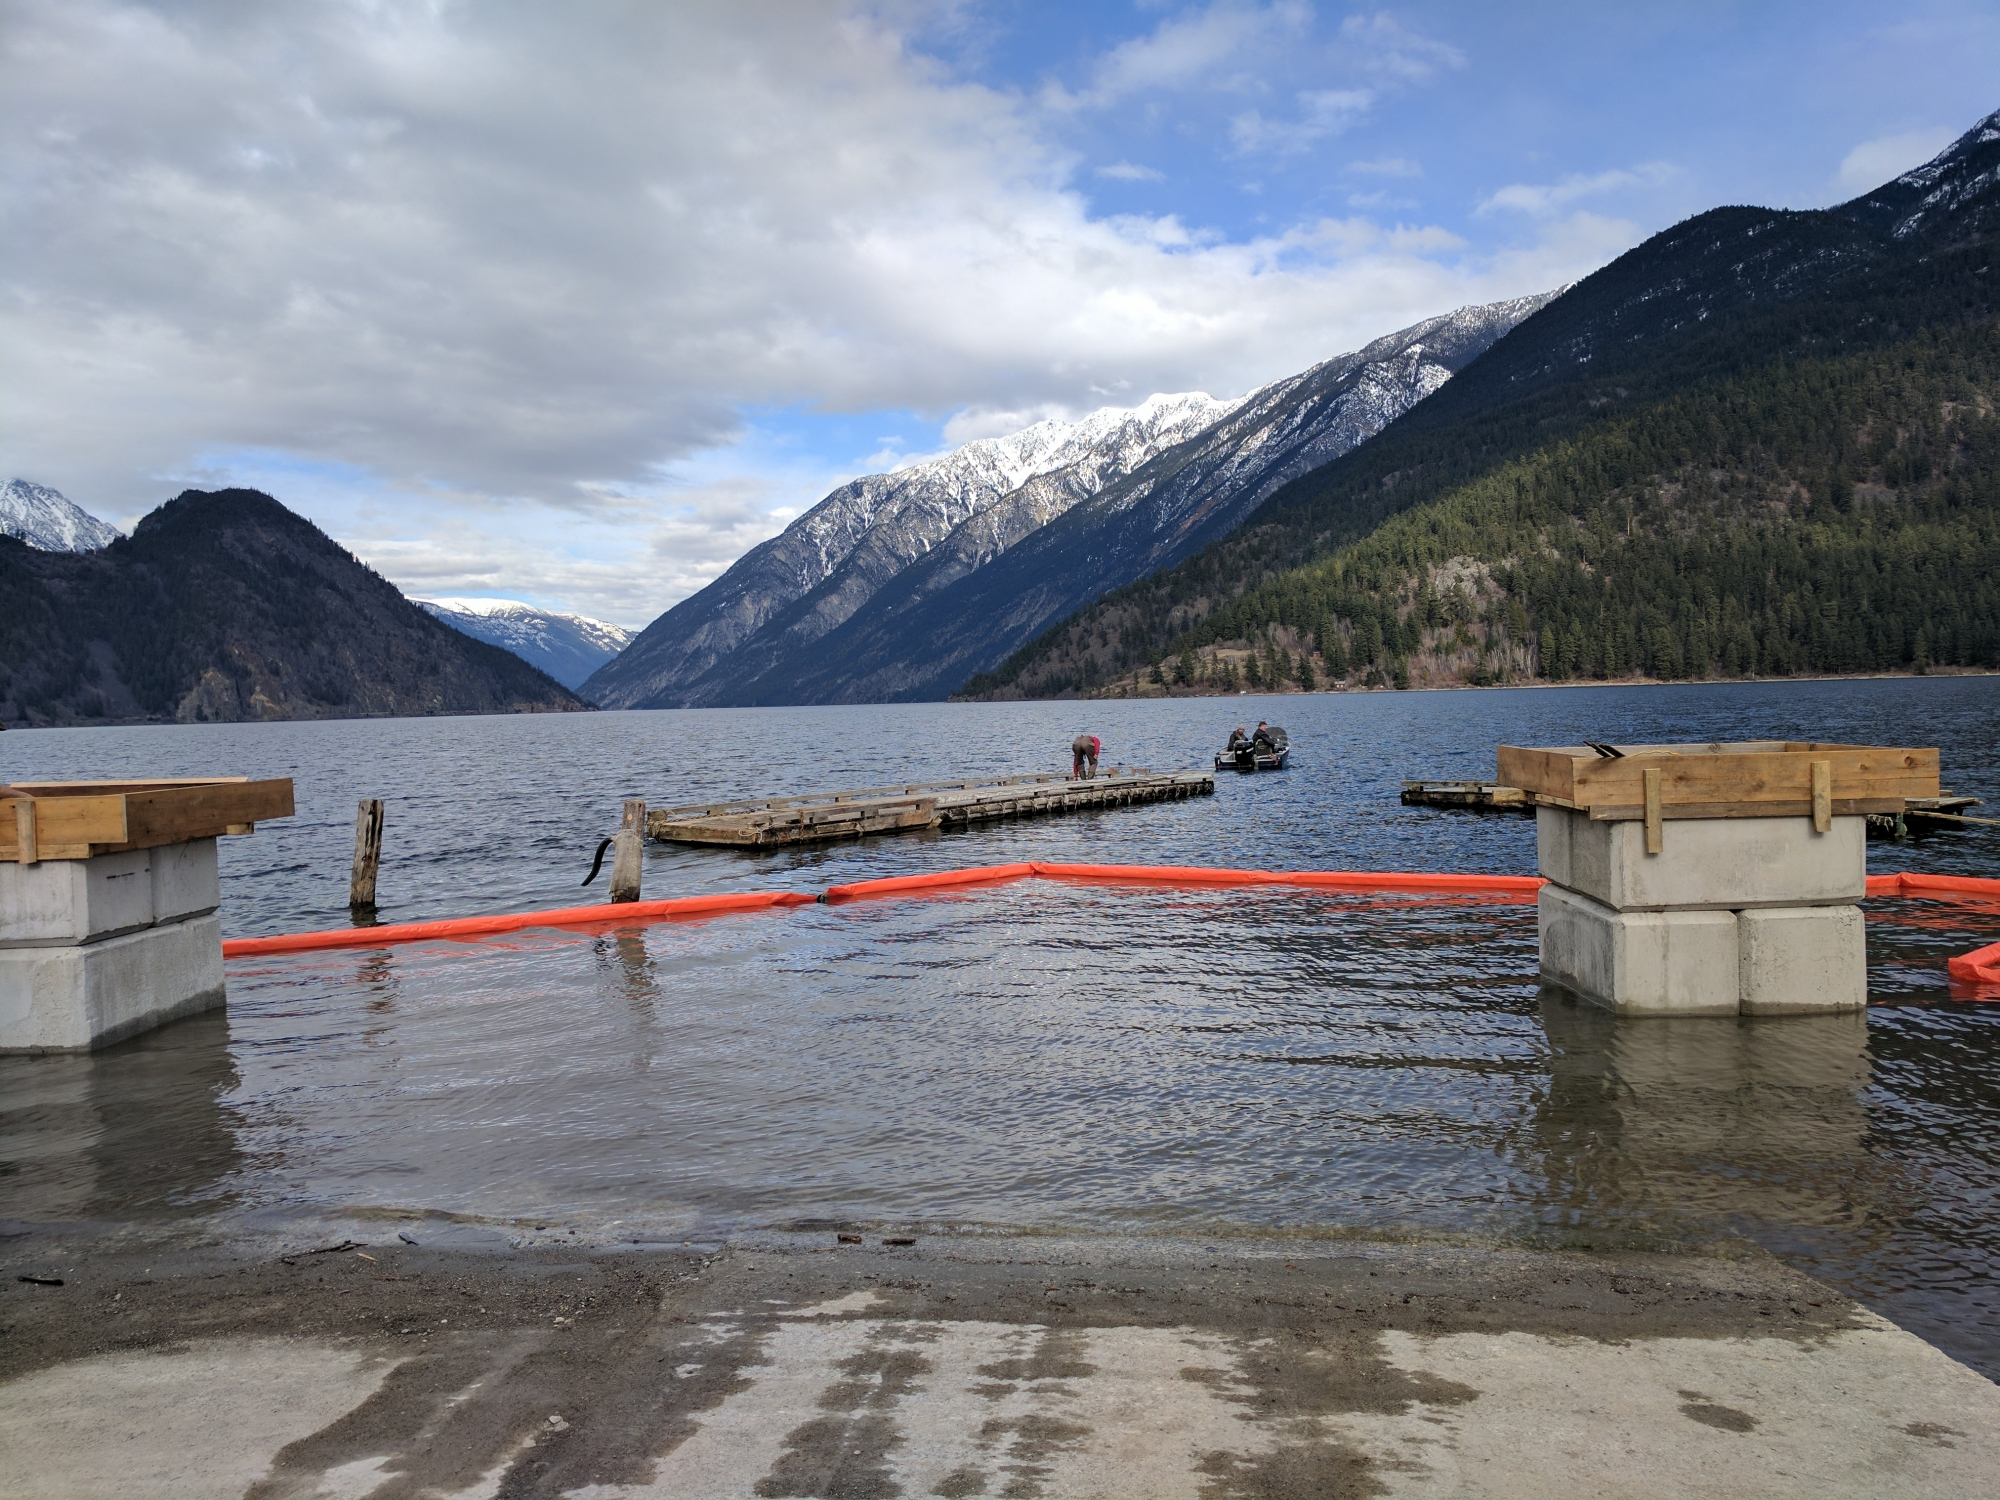 Anderson lake docks and boat launch squamish lillooet regional district for Squamish swimming pool schedule